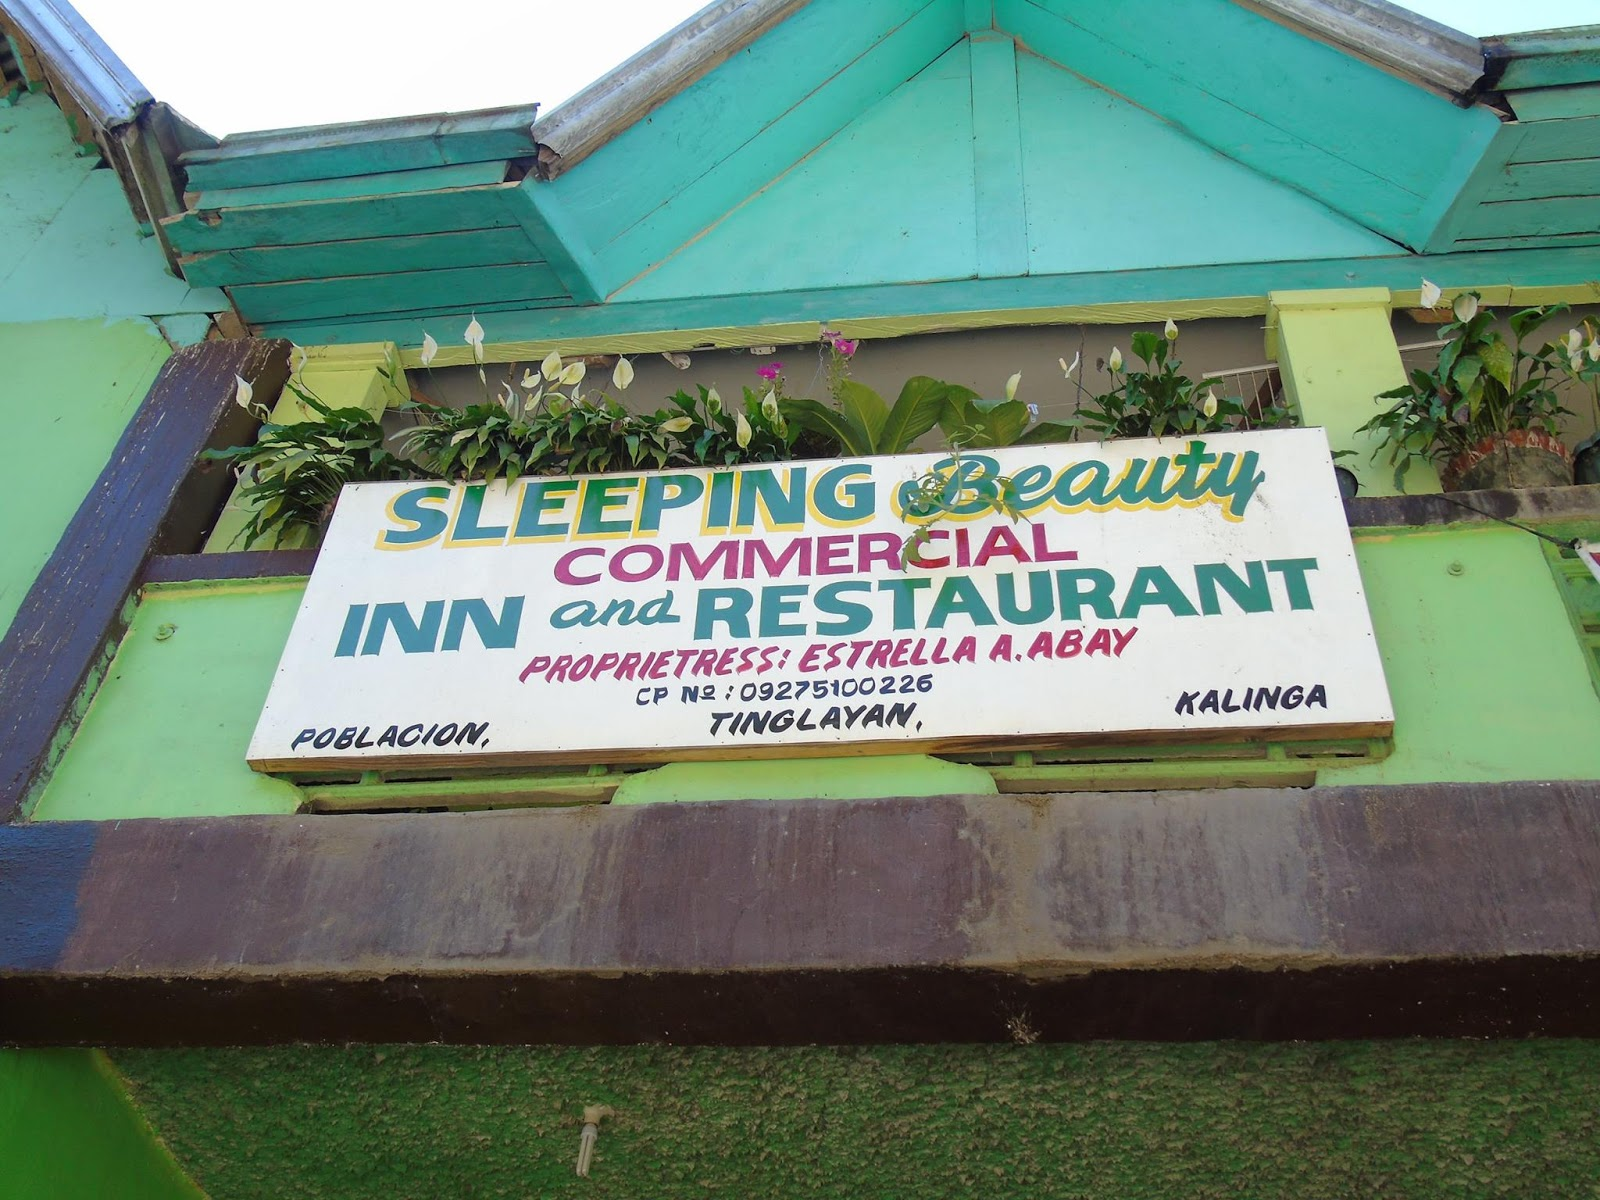 The Sleeping Beauty Inn, Tinglayan, Kalinga